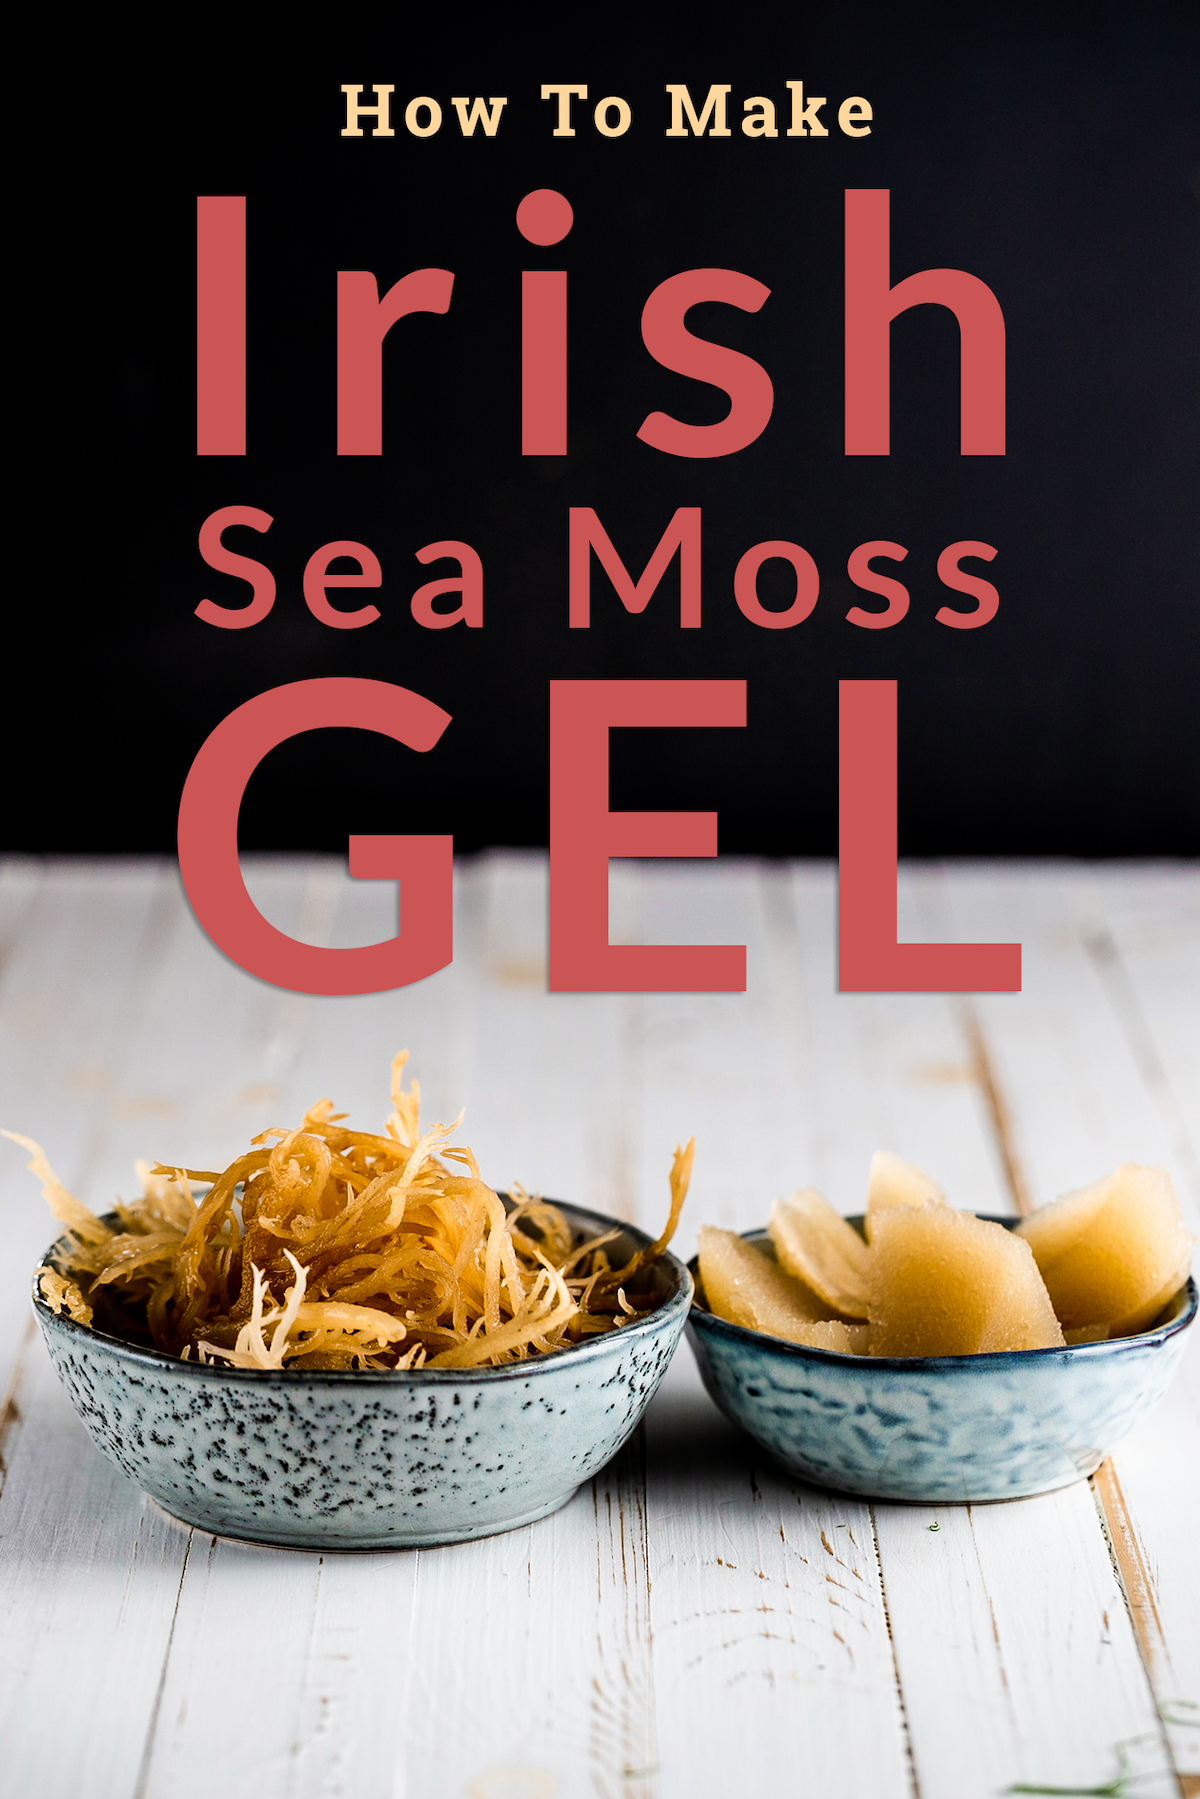 Irish moss and Irish moss gel in blue dishes on a white background with text above